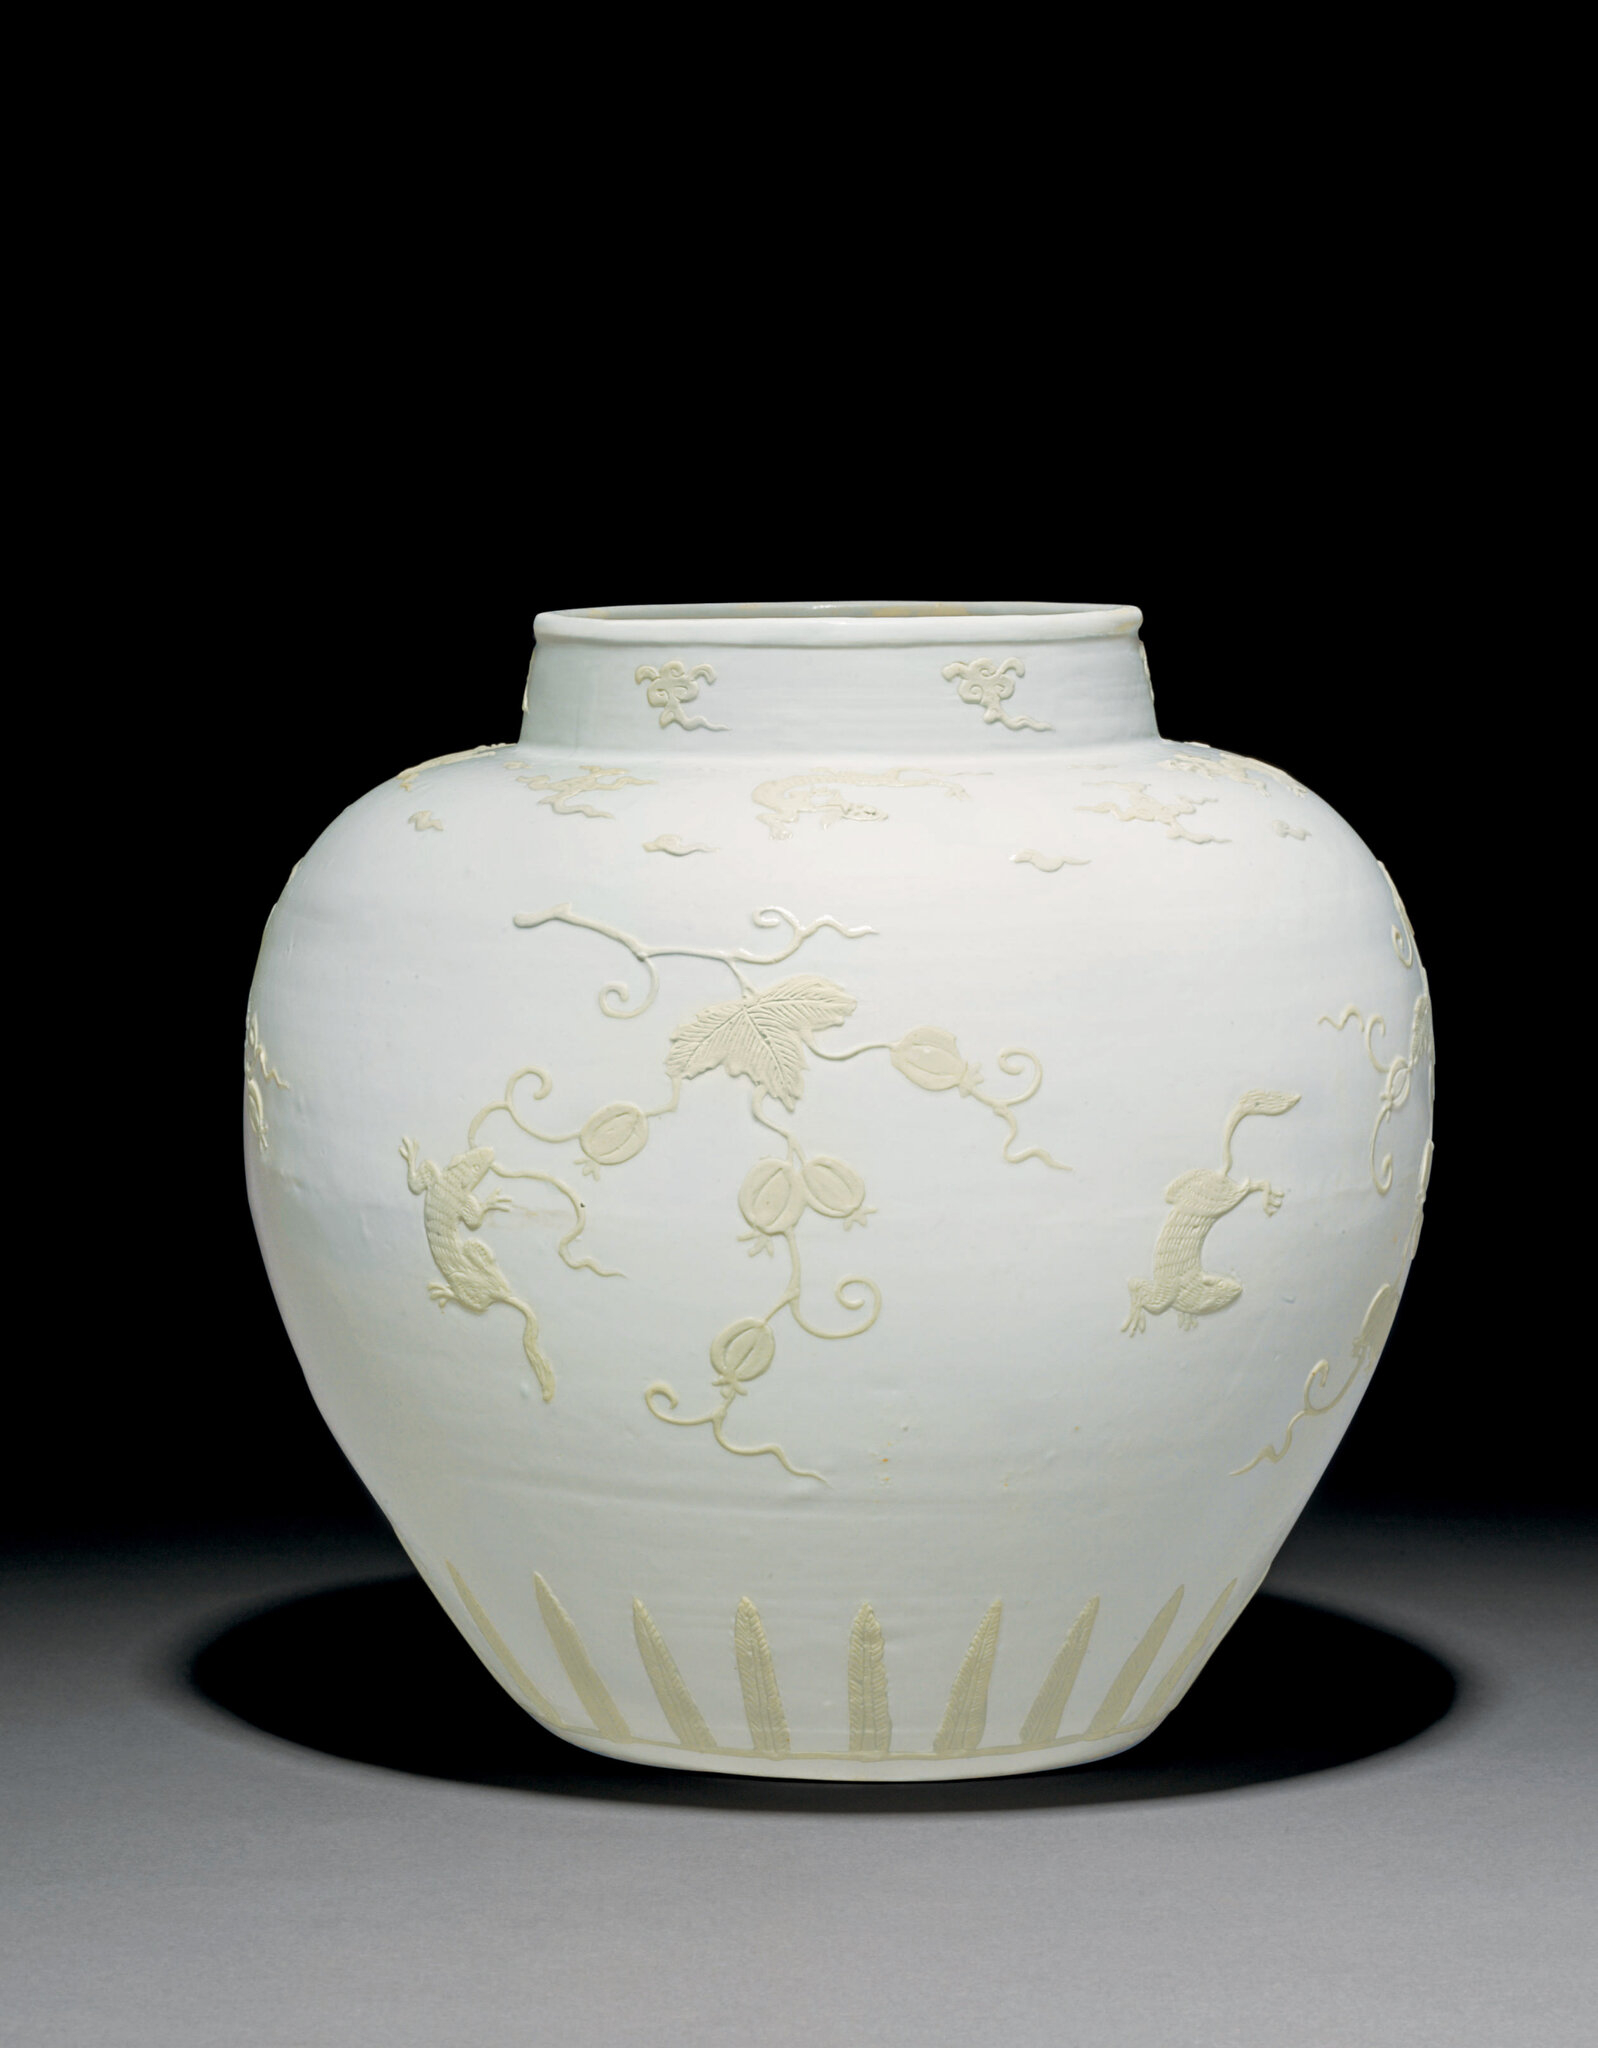 A very rare slip-decorated white-glazed jar, Ming dynasty, 16th century